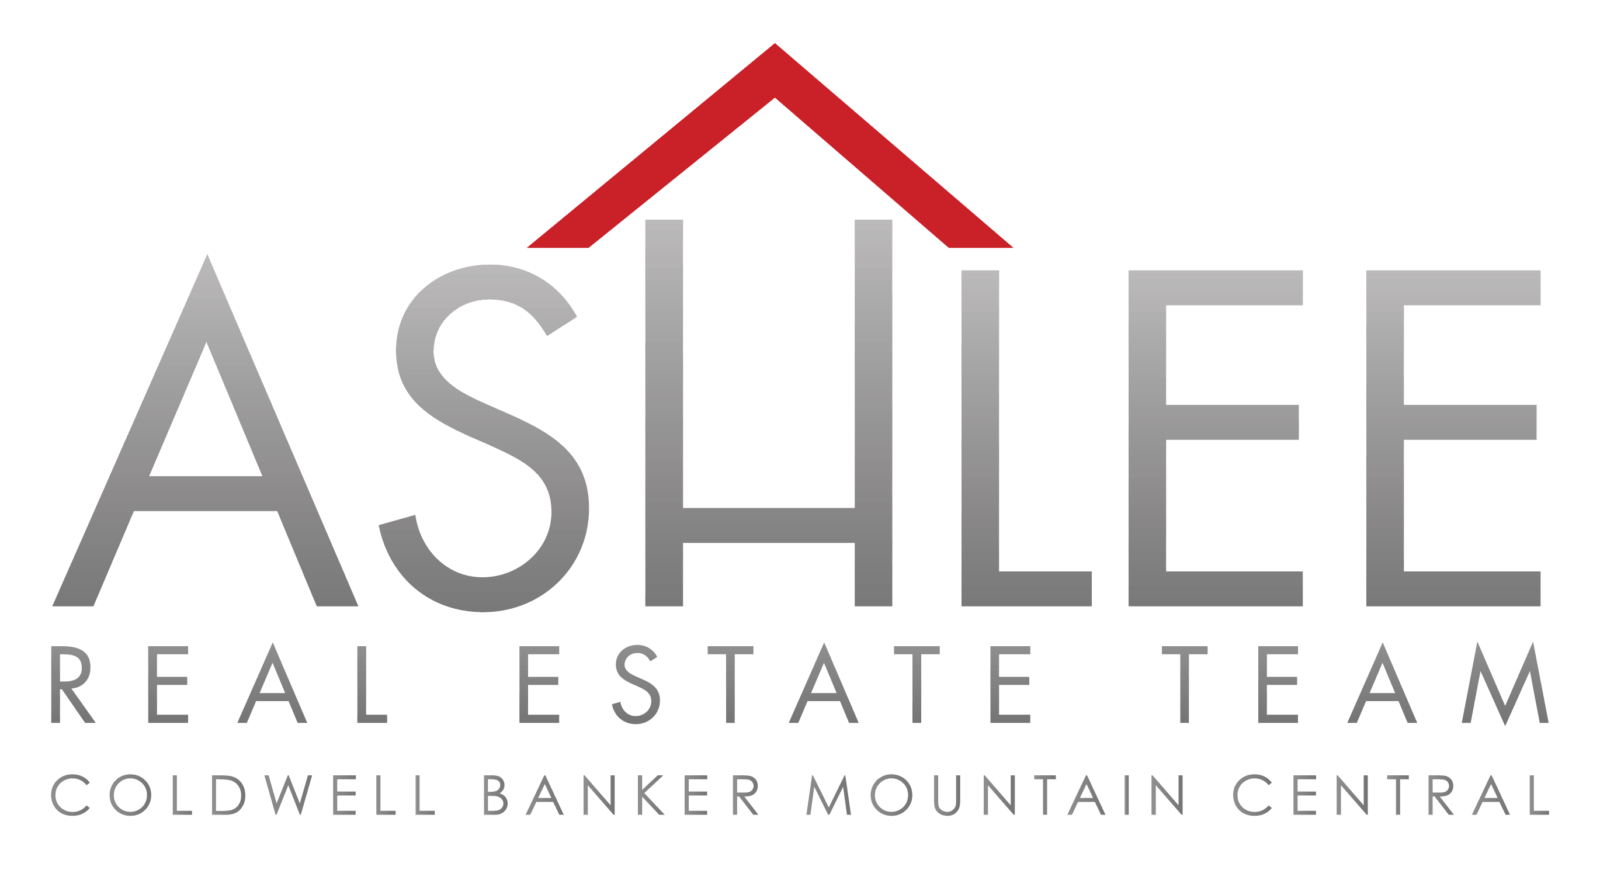 Ashlee Real Estate Team